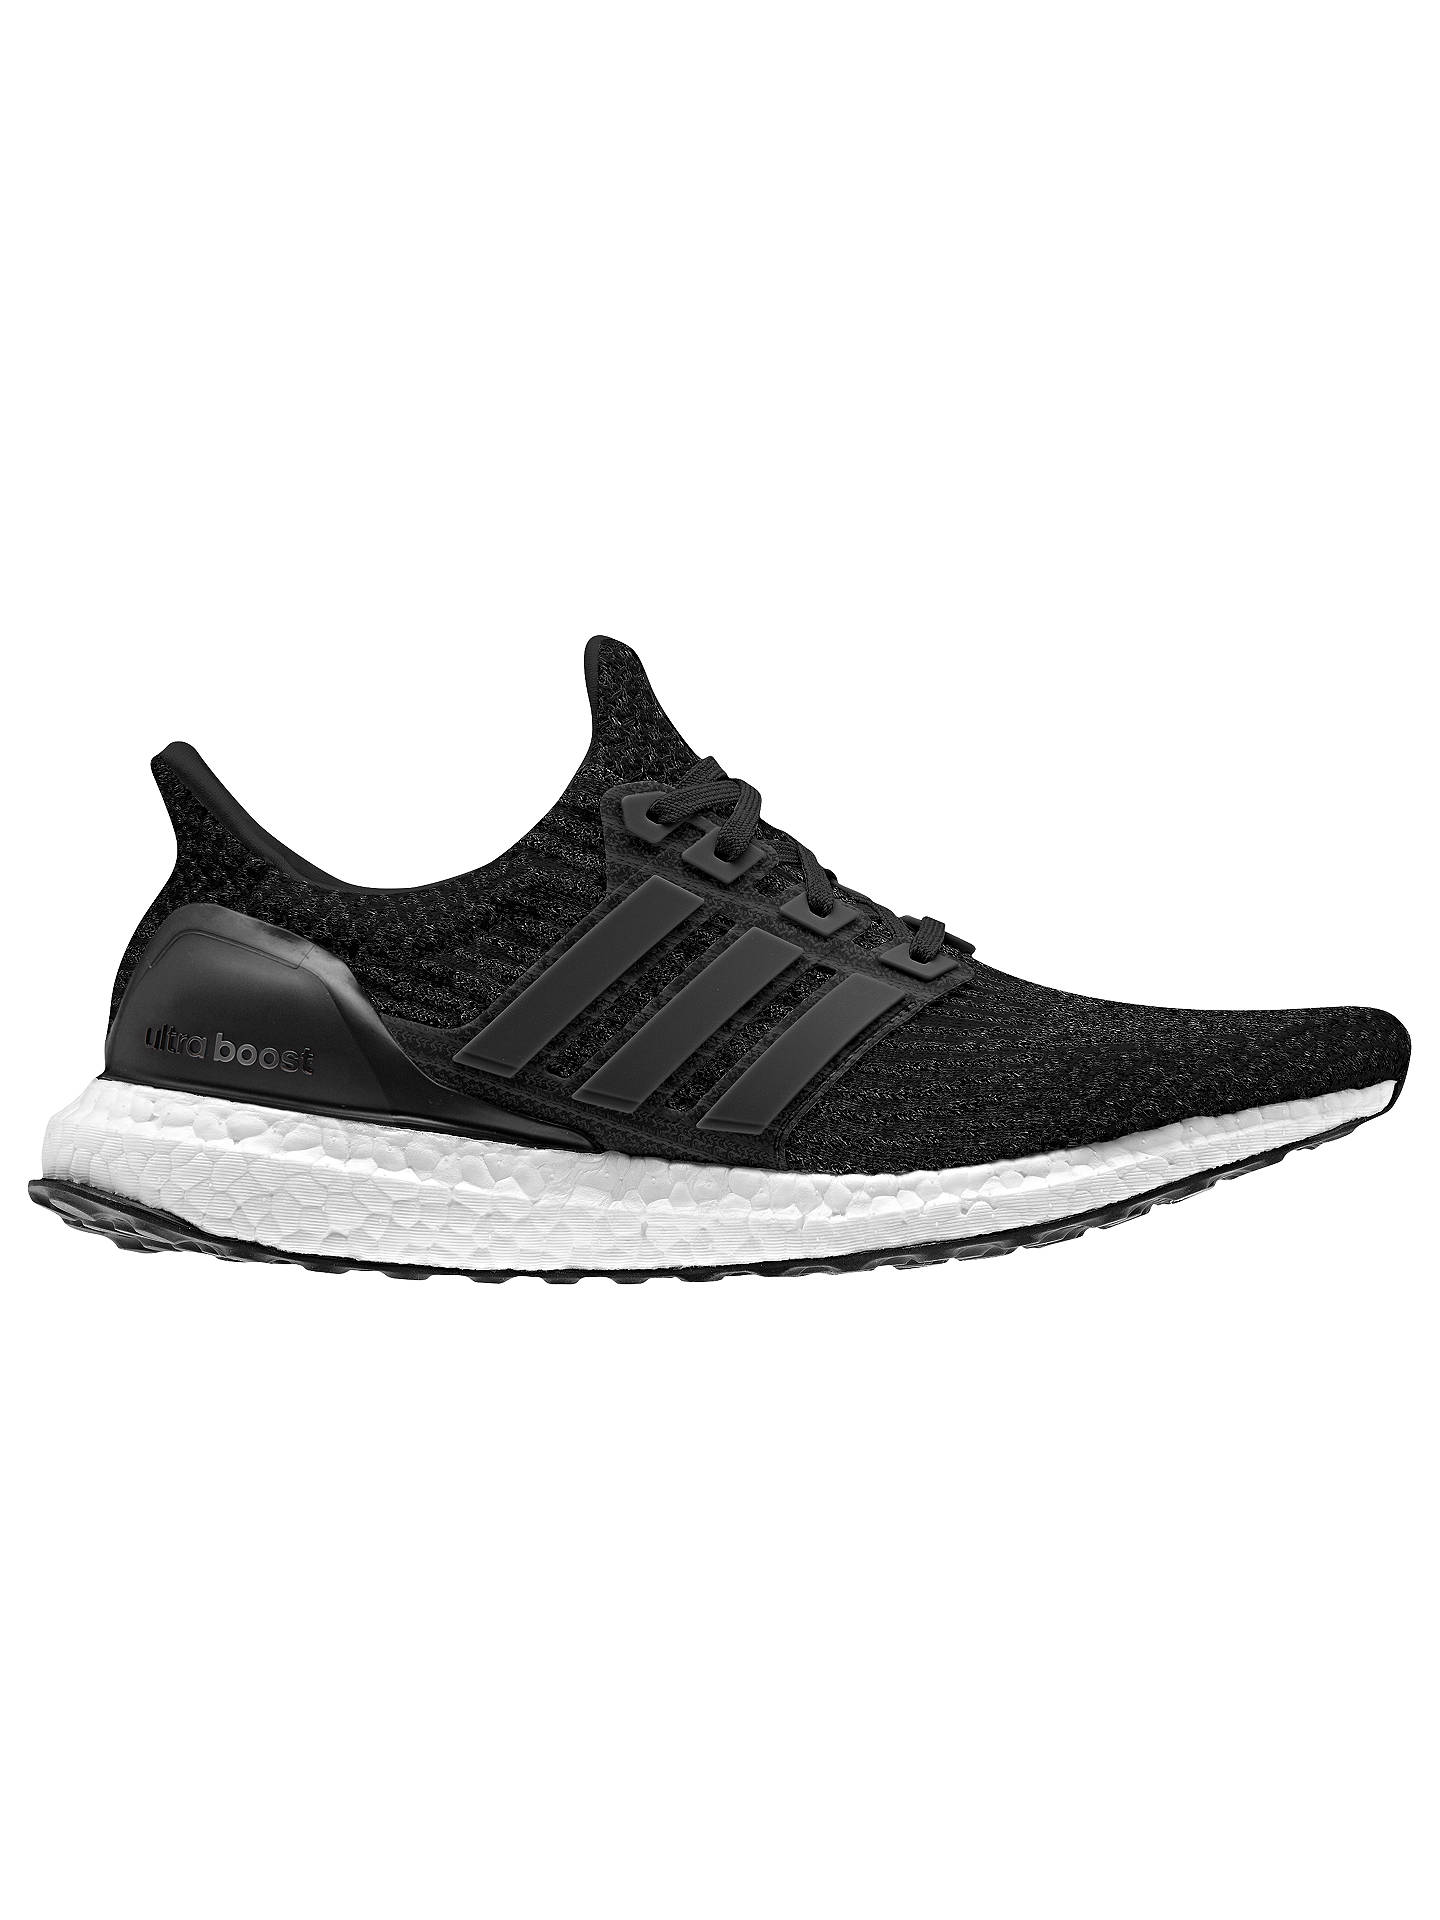 3591c7b013e Buy adidas Ultra Boost Women s Running Shoes